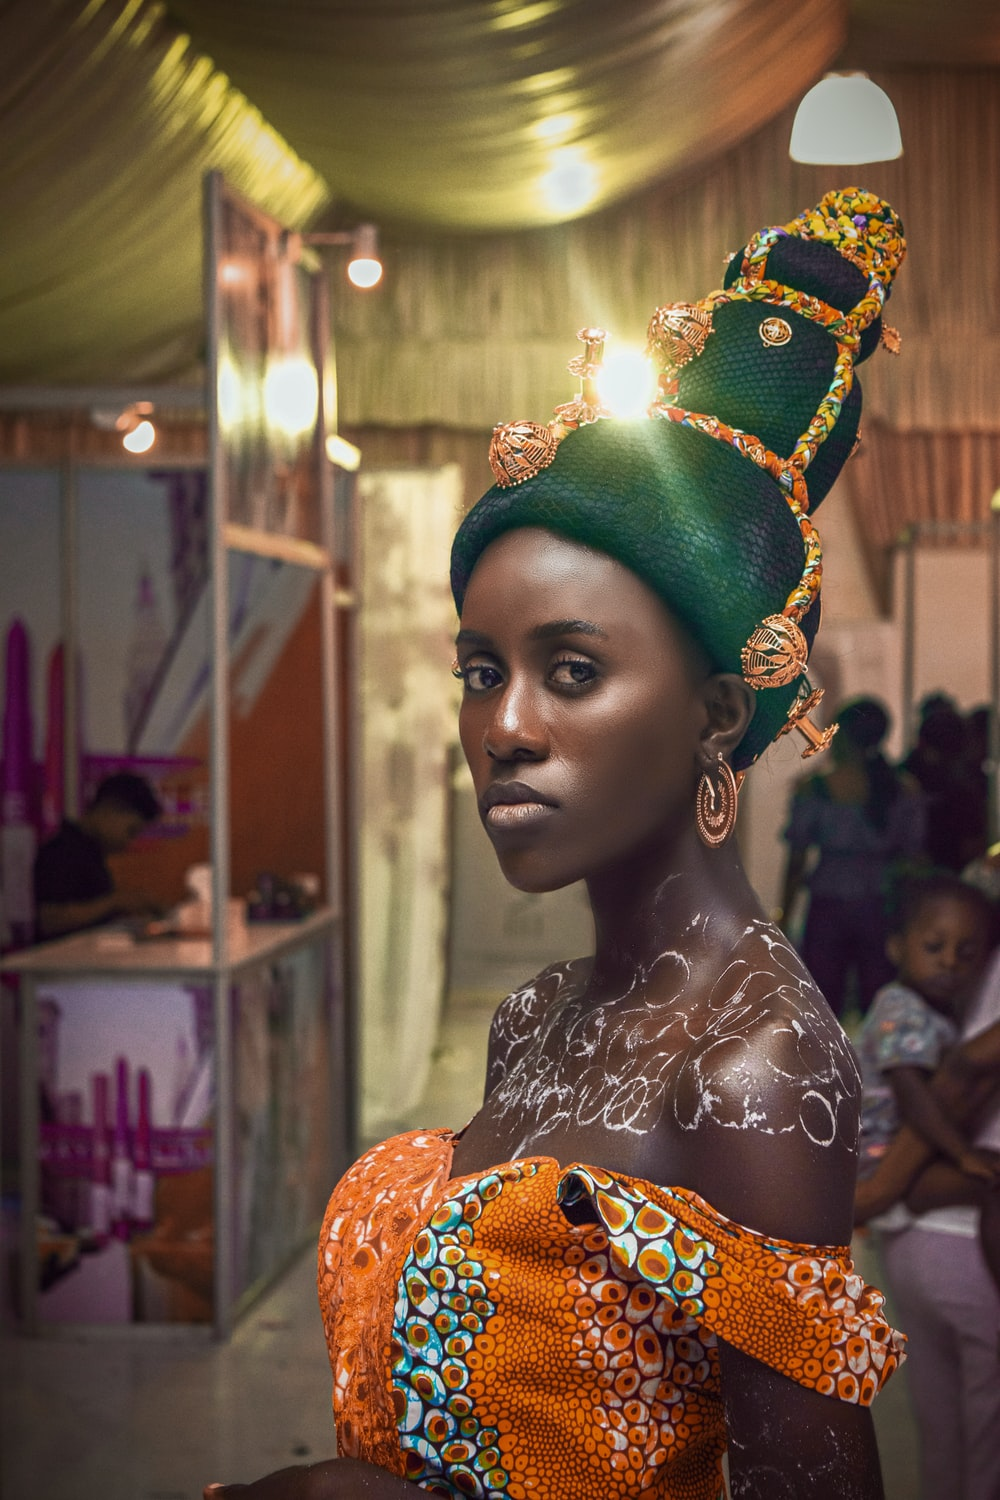 woman in green and gold crown